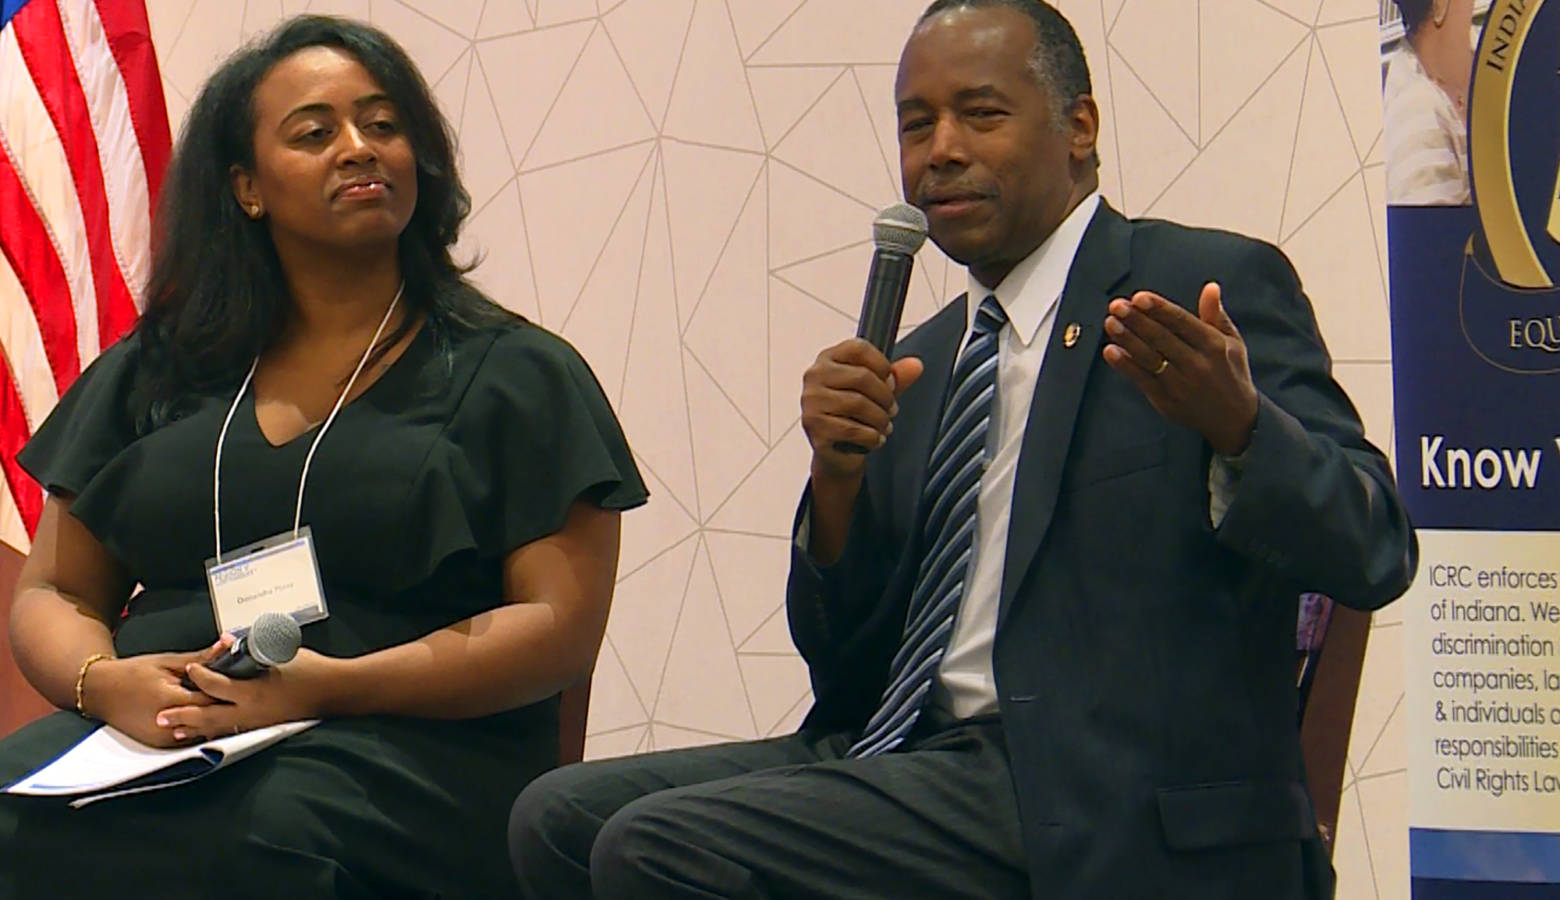 U.S. Secretary of Housing and Urban Development Ben Carson speaks during an audience-submitted Q-and-A session at the Region 5 Fair Housing Law and Policy Conference. (Lauren Chapman/IPB News)